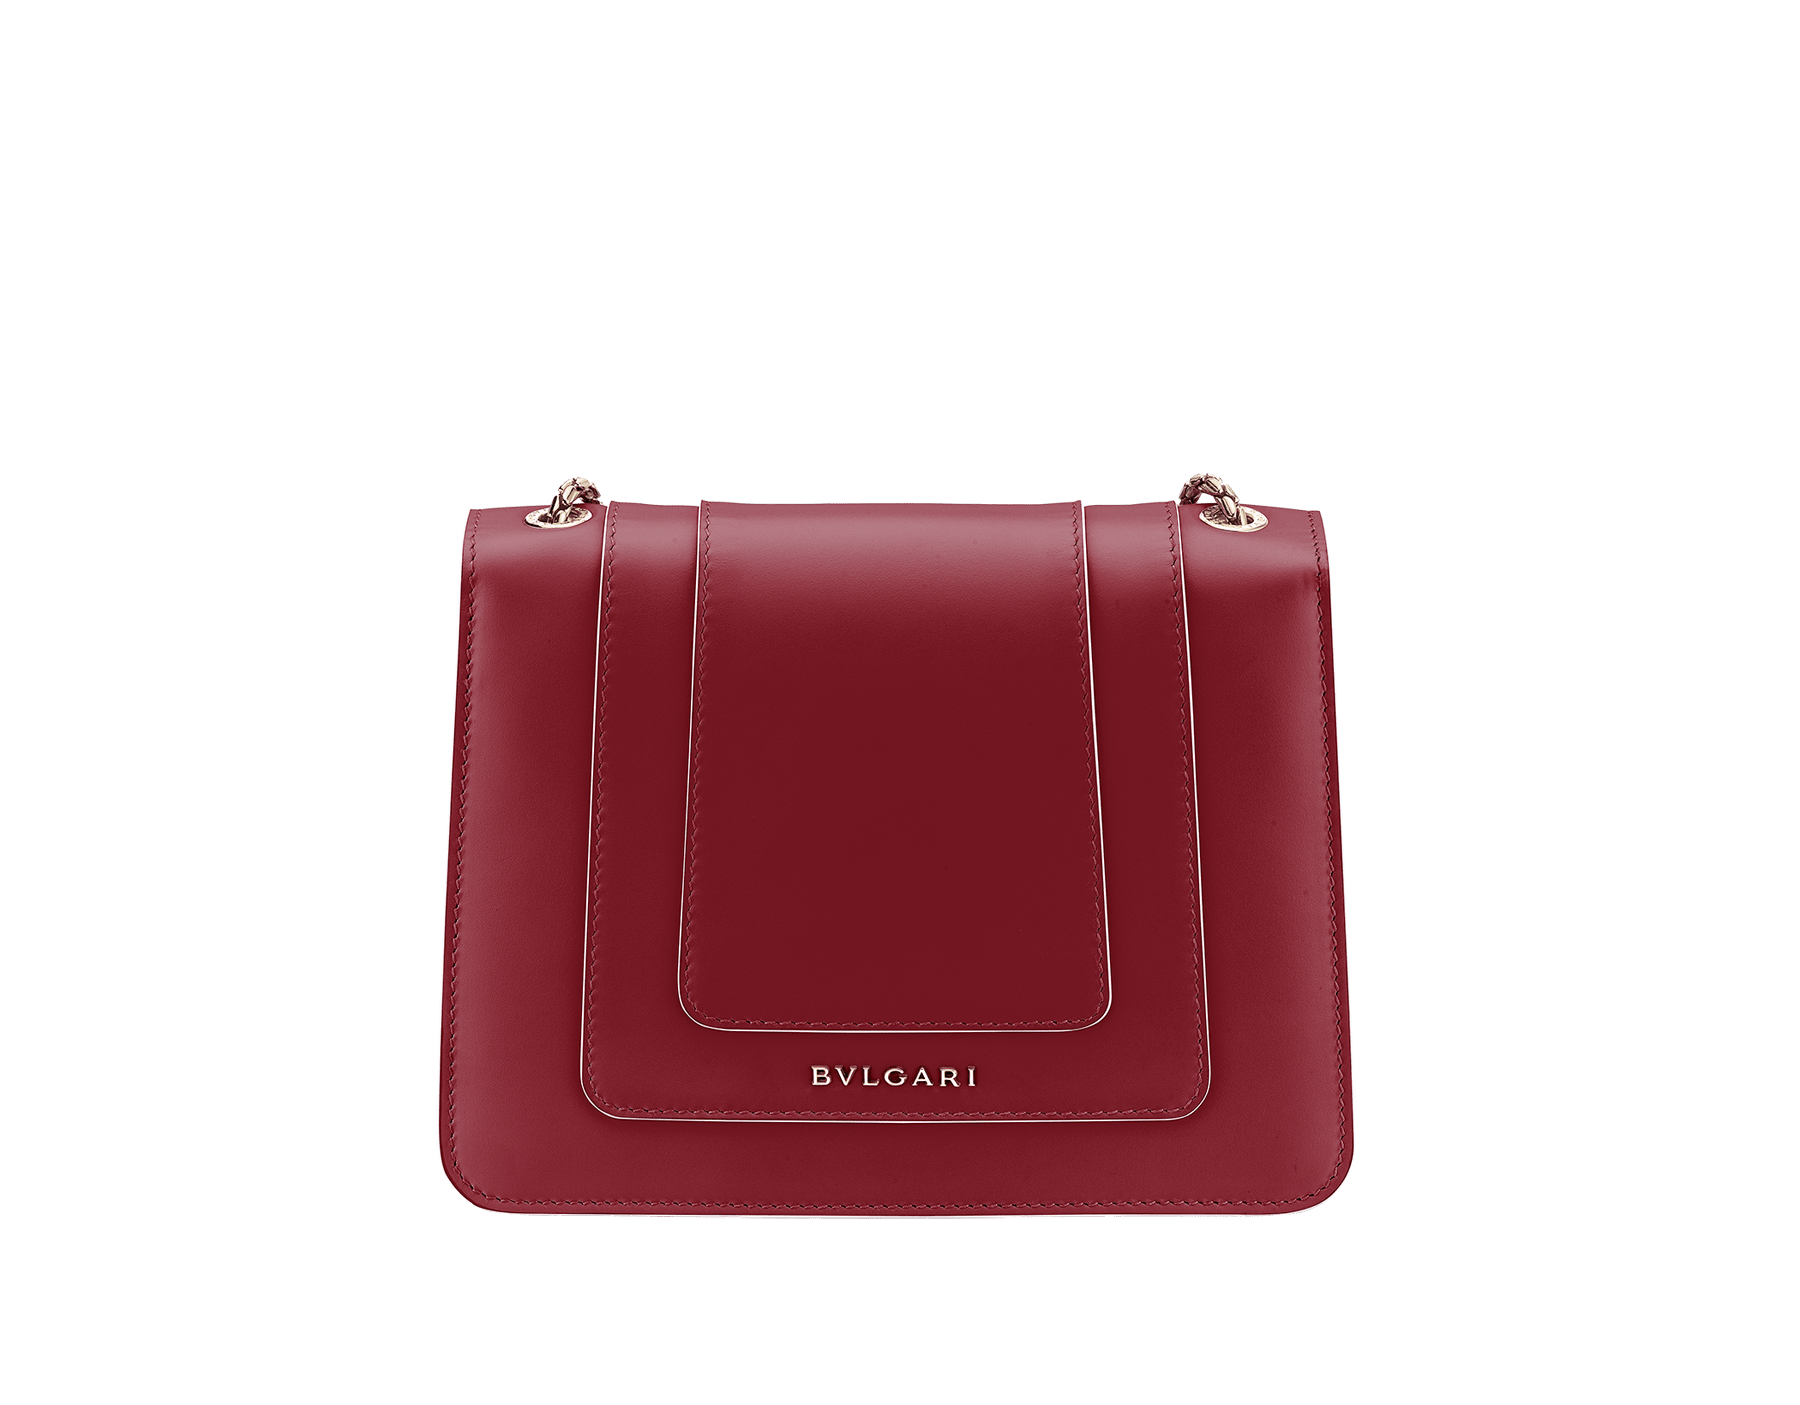 Serpenti Forever crossbody bag in Roman garnet calf leather, with rosa di francia calf leather sides. Iconic snakehead closure in light gold plated brass embellished with black and white enamel and green malachite eyes. 289035 image 6